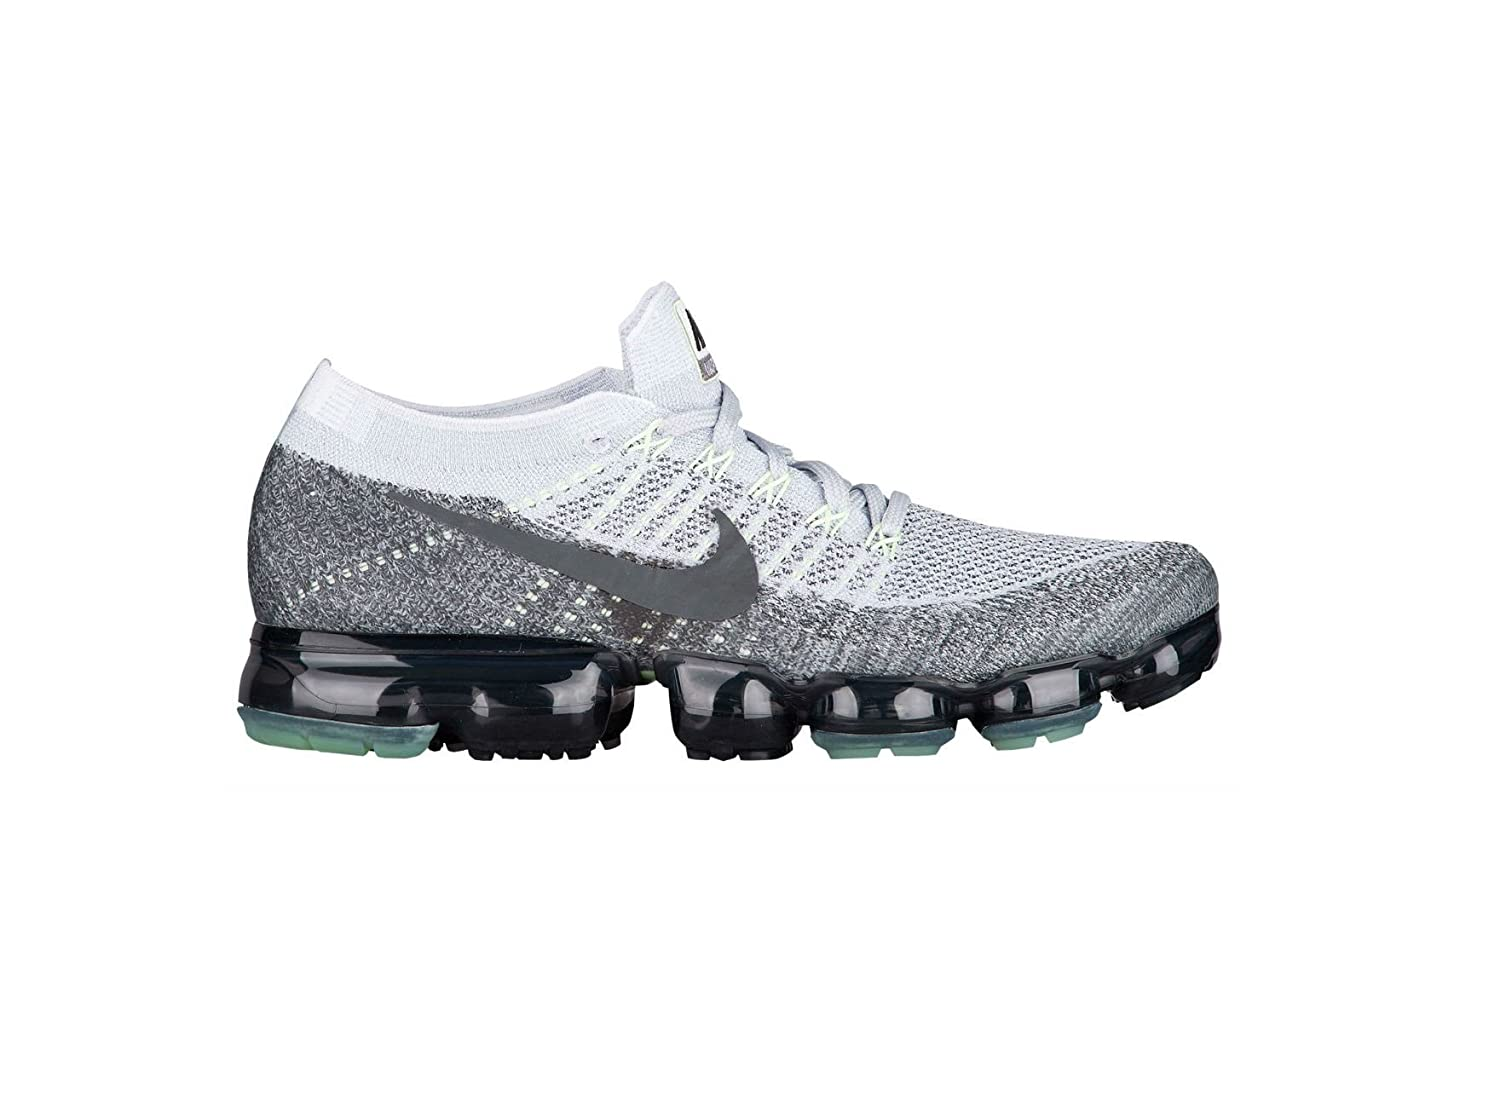 low priced 34db8 70842 switzerland amazon nike air vapormax grey neon 922915 002 us size 8 in  broken shoes box